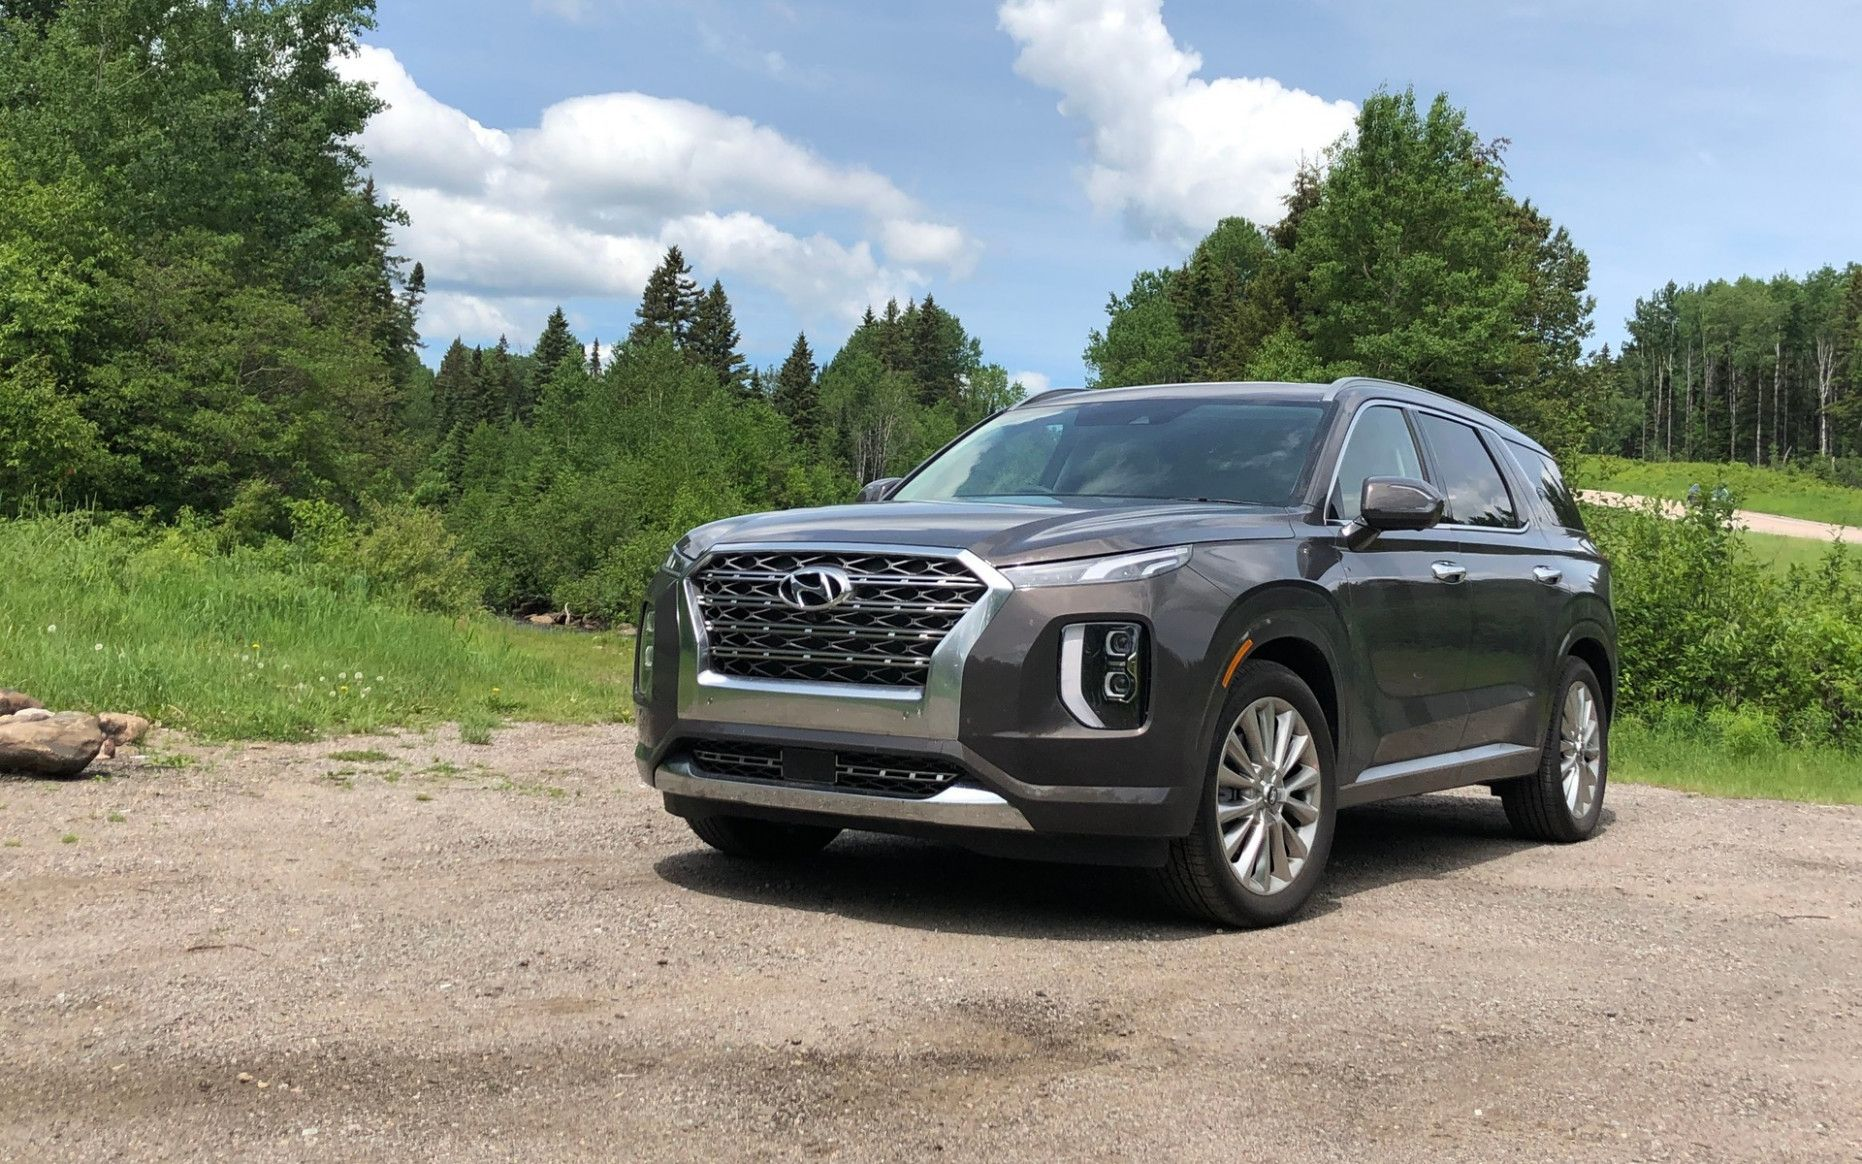 Why Is Everyone Talking About 2020 Hyundai Luxury Suv Concept Car 2020 Luxury Suv Hyundai Suv Suv Comparison